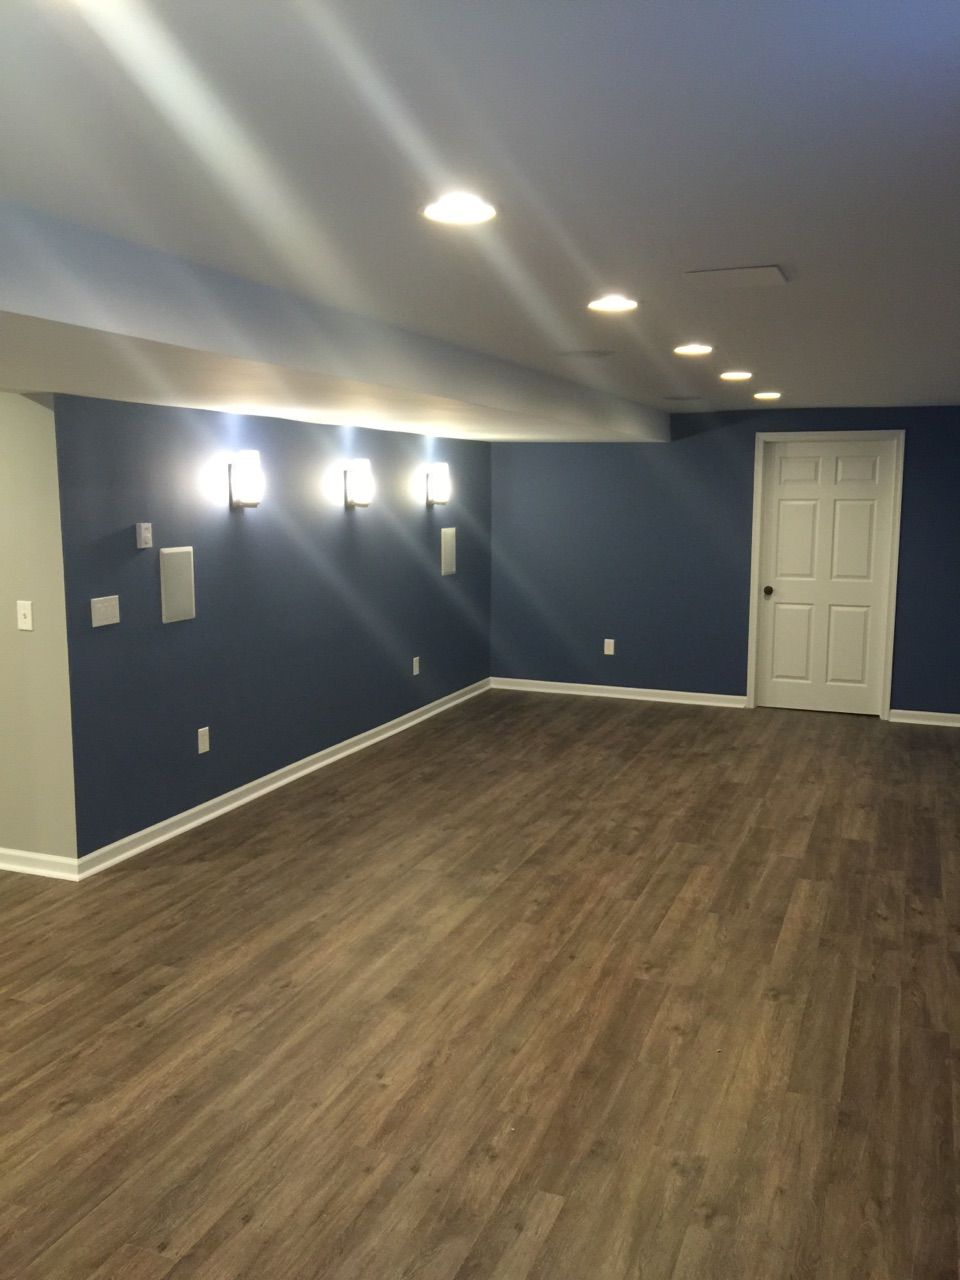 Sherwin williams perfect greige ideas pictures remodel - Sure Fix Remodeling Easton Pa Basement Remodel With Sherwin Williams Denim Color White Trim And Beautiful Lighting